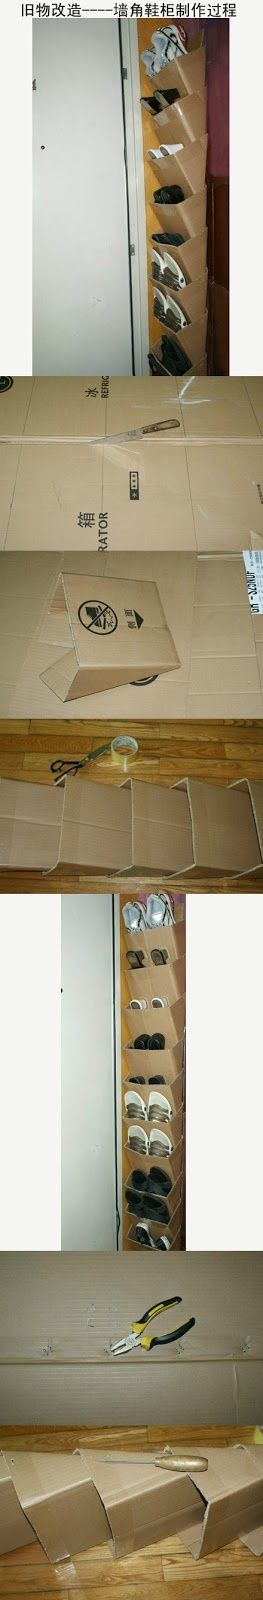 Homemade Shoe Hanger | ... It / Homestead Survival: Homemade Vertical Cardboard Shoe Rack Project